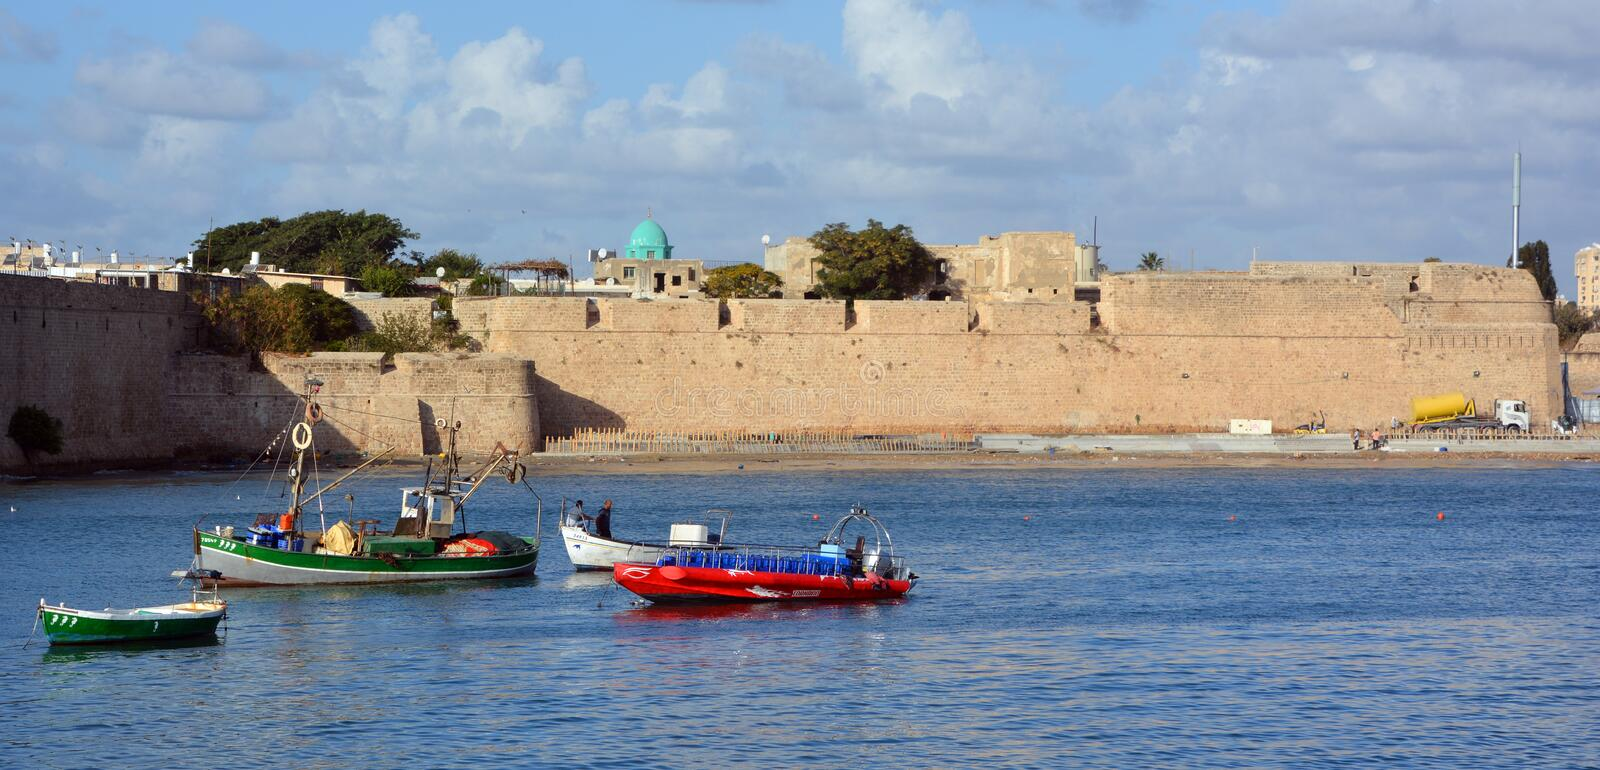 Seaport Akko. ACRE ISRAEL 01 11 16: Seaport Akko Acre, estimated to be about 4,000 years old, is one of Israel most ancient cities and is located on the shores royalty free stock photography